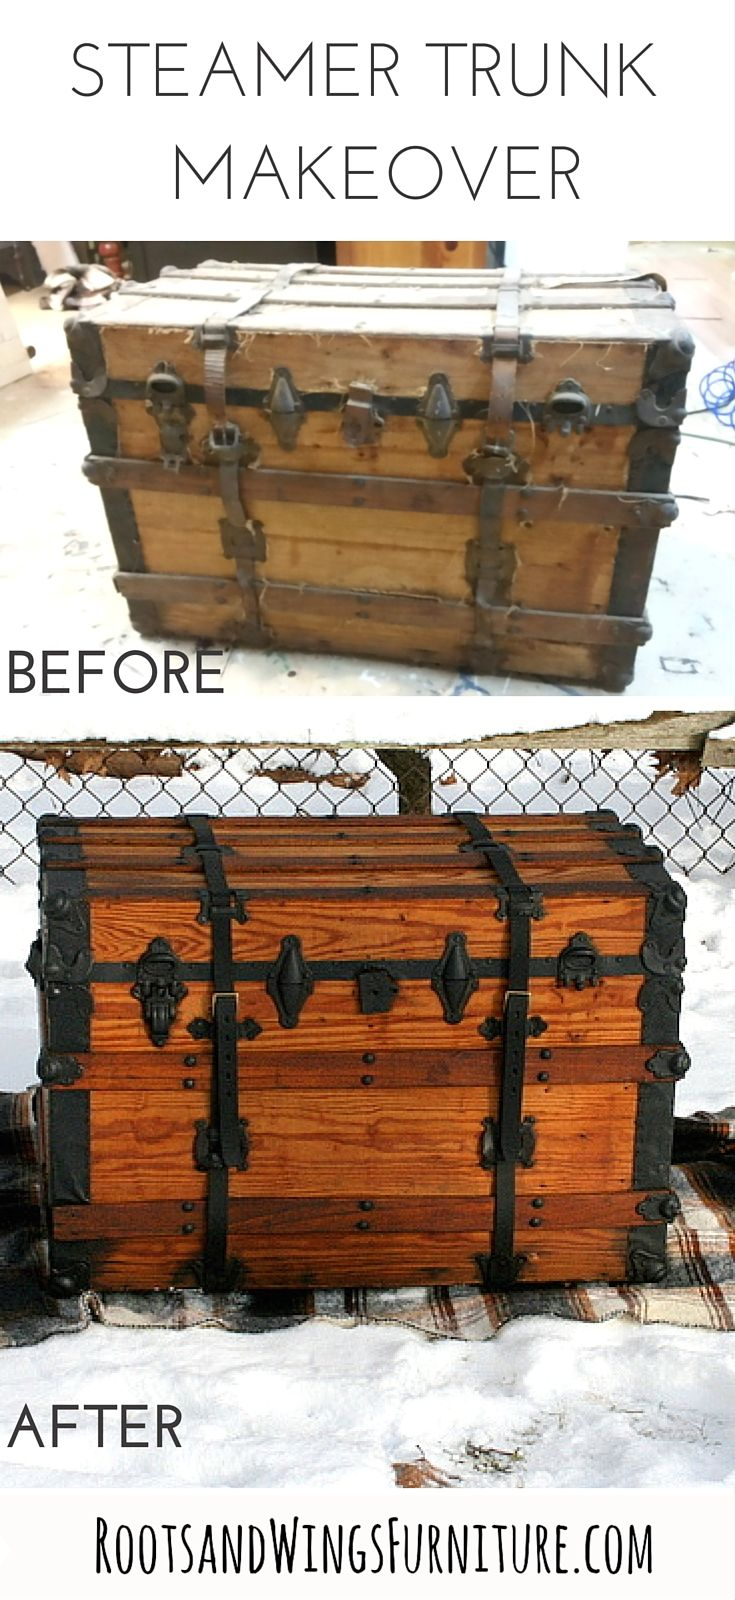 Steamer Trunk Makeover by Jenni of Roots and Wings Furniture.  MMS Hemp Oil and General Finishes Lamp Black Milk Paint were used.